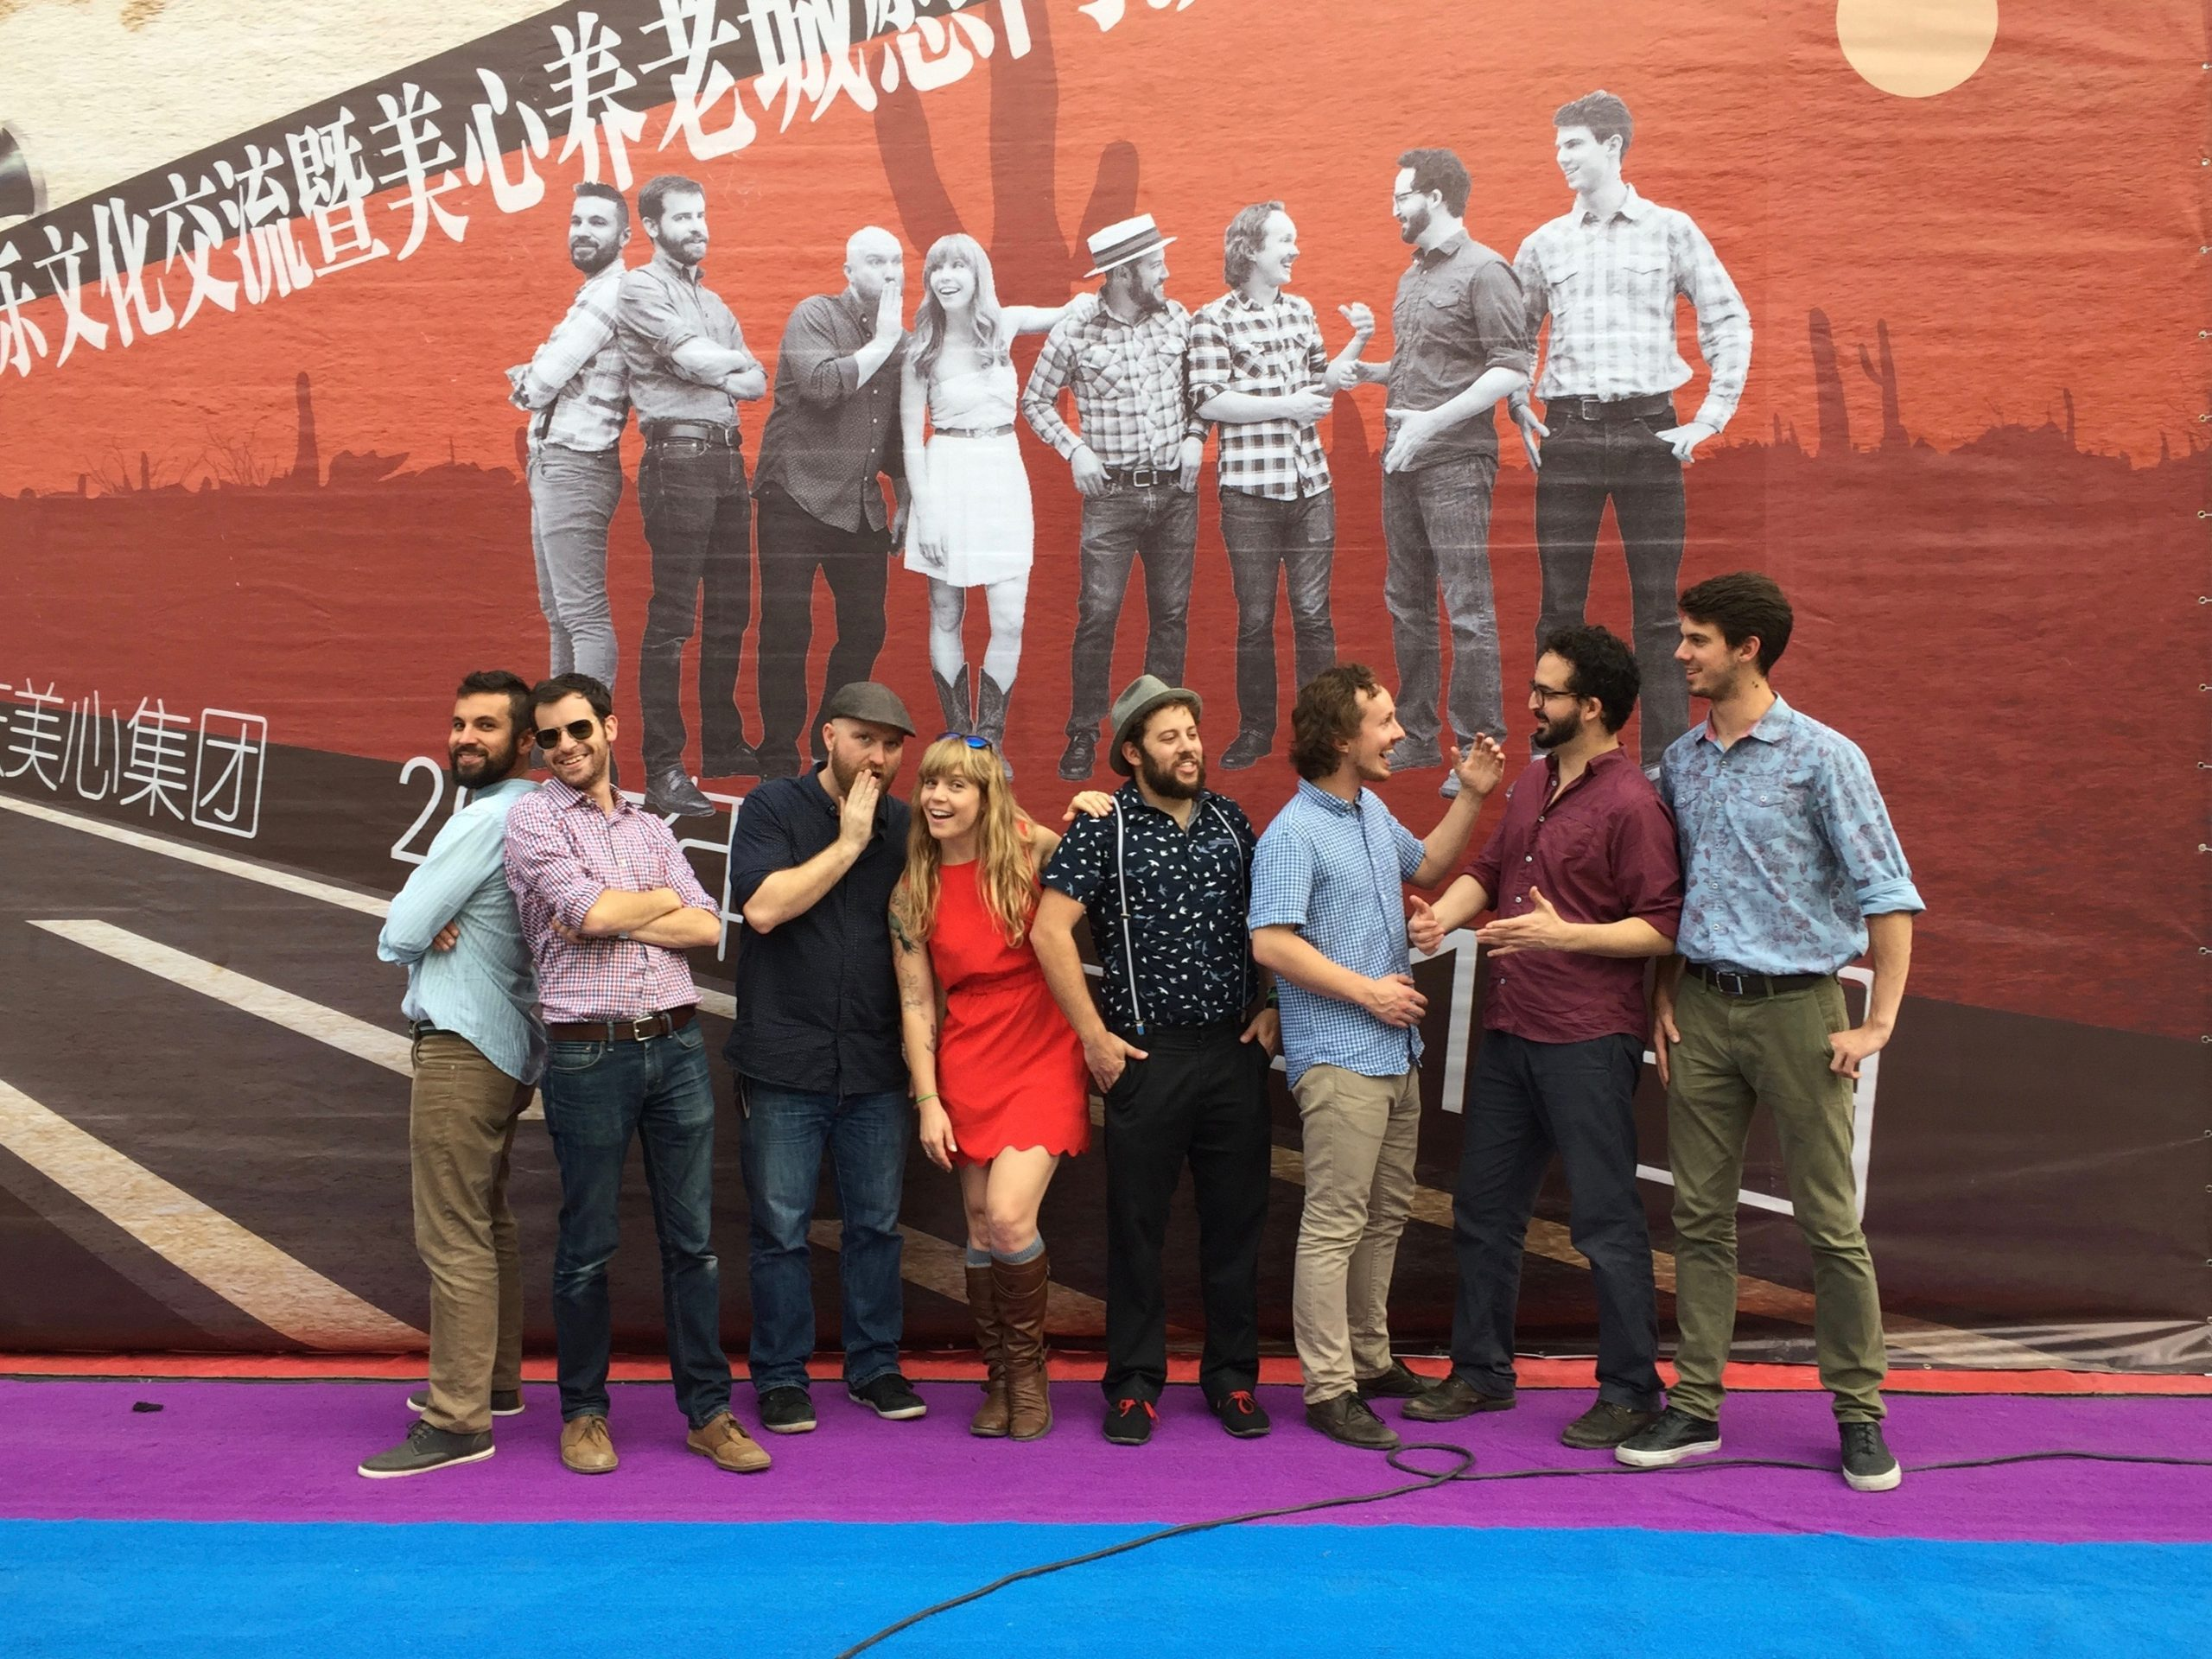 WATCH: The Dustbowl Revival, 'The Dustbowl in China: A Documentary'